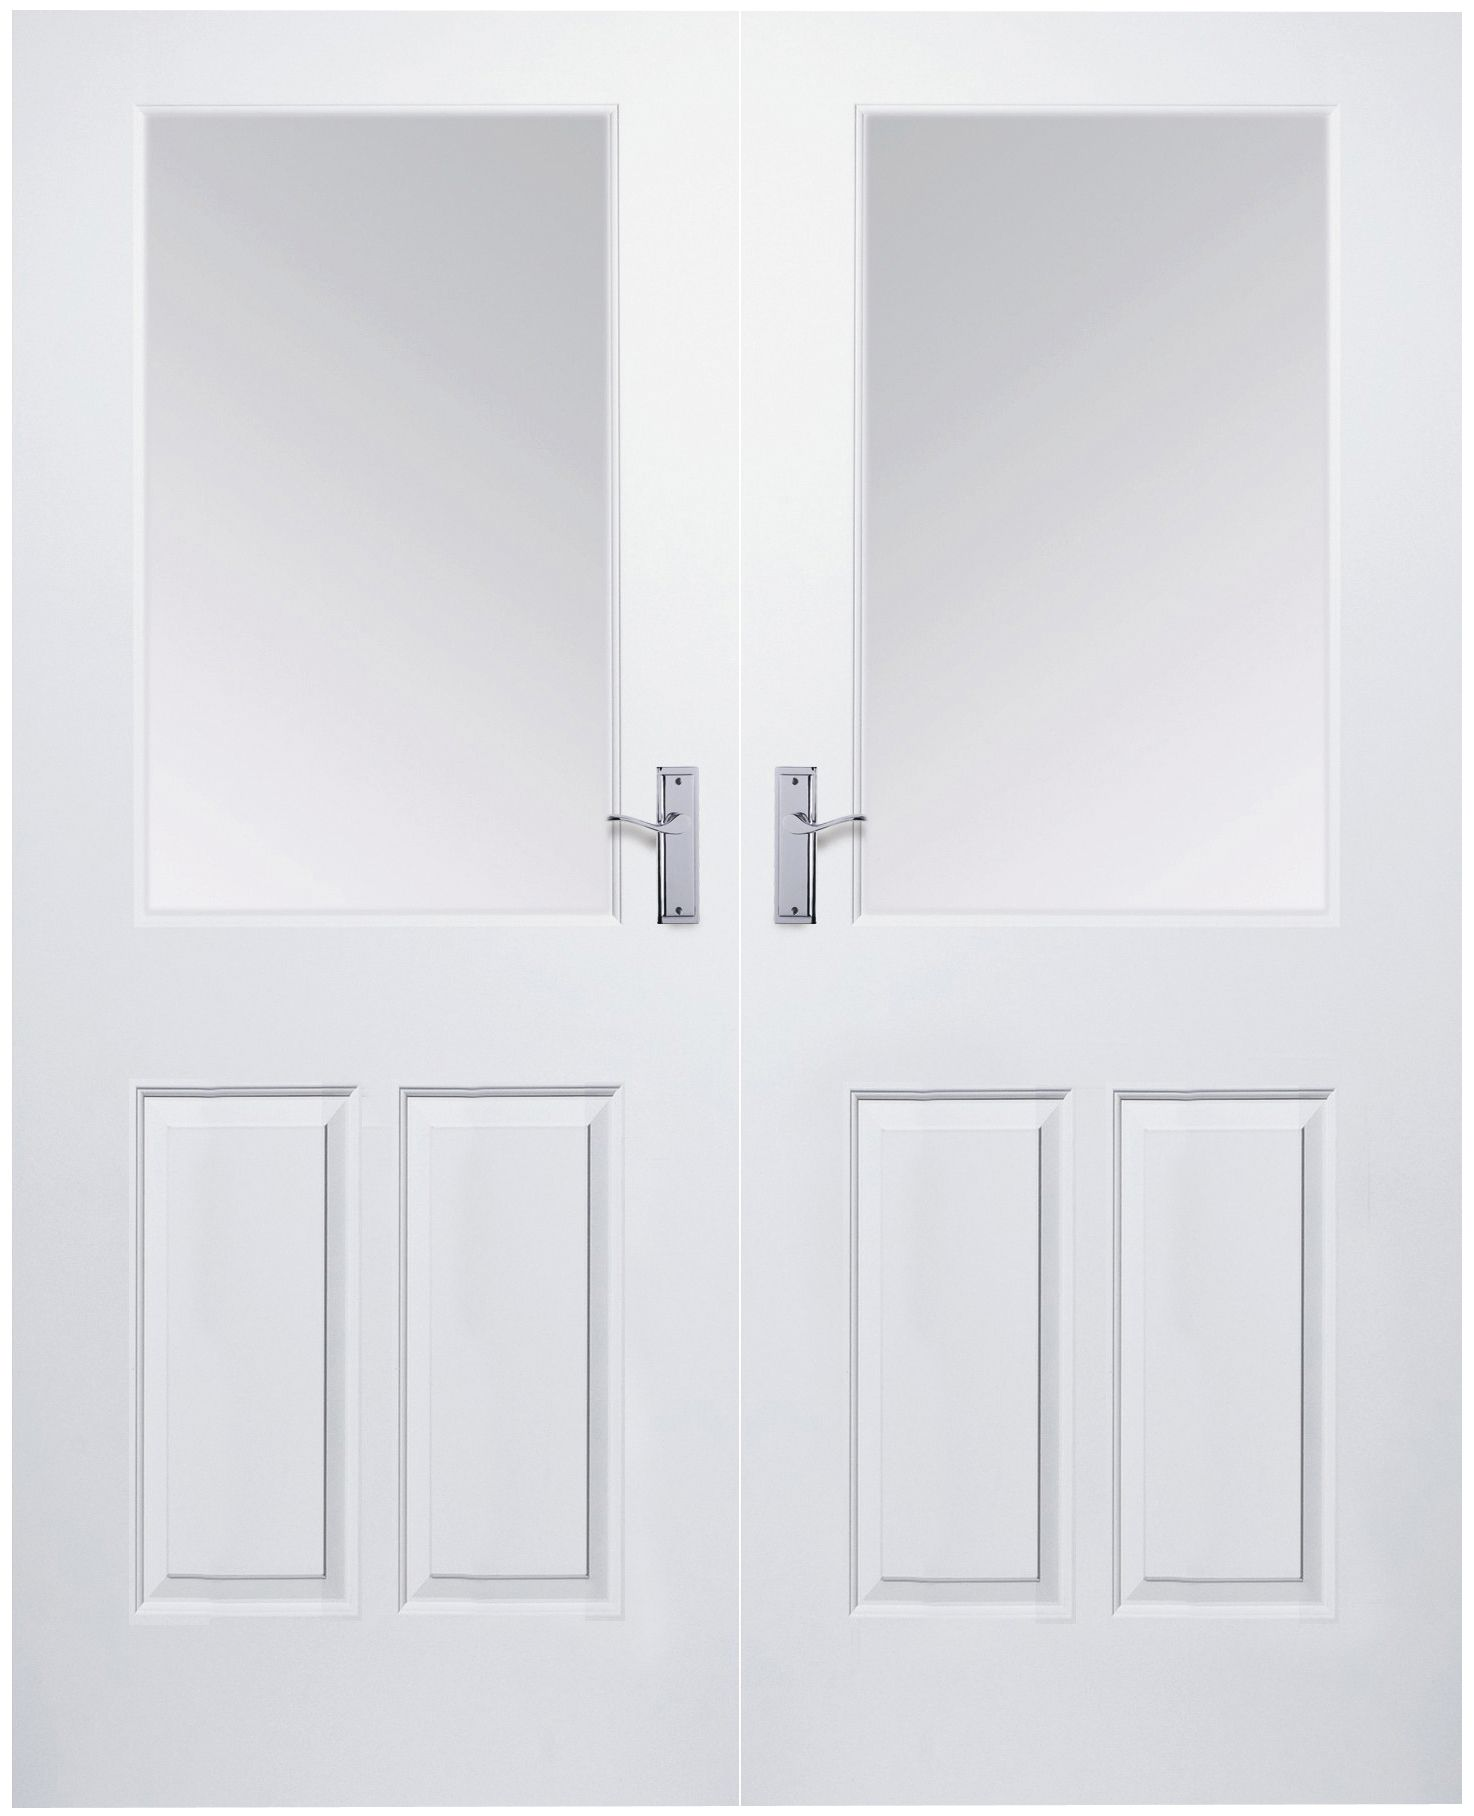 Broadland 2 Lite Obscure Partially Glazed Moulded Internal French French Door (H)1981mm (W)1168mm | Departments | DIY at B\u0026Q  sc 1 st  B\u0026Q & Broadland 2 Lite Obscure Partially Glazed Moulded Internal French ...